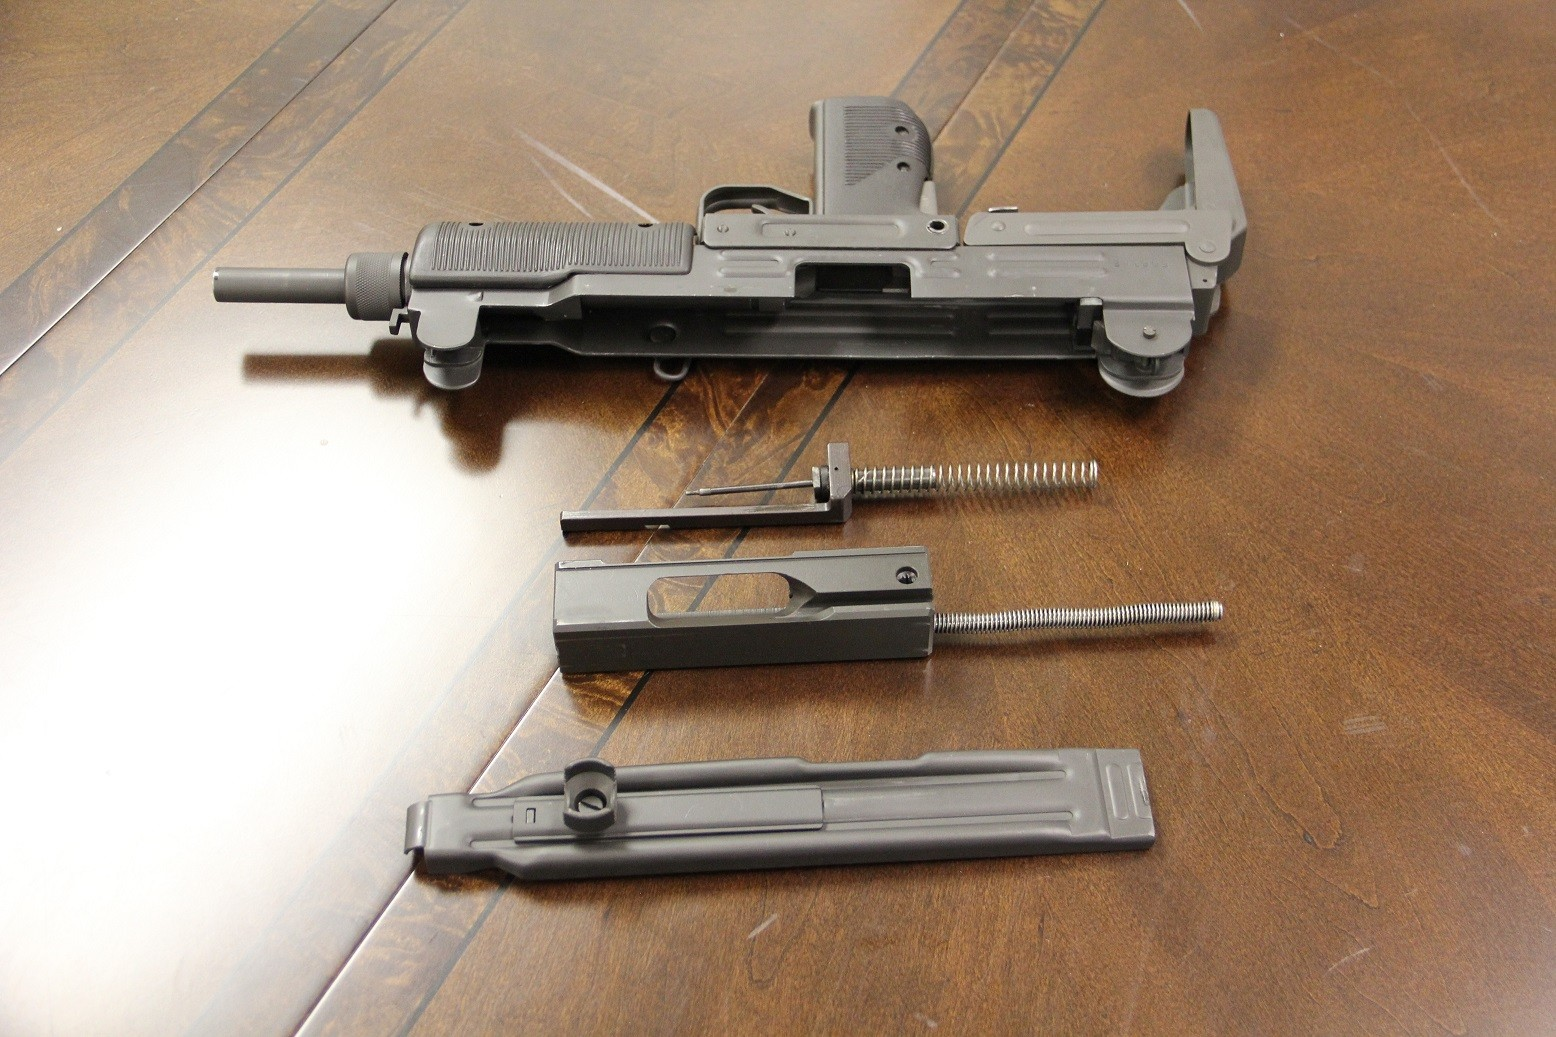 Uzi Disassembly